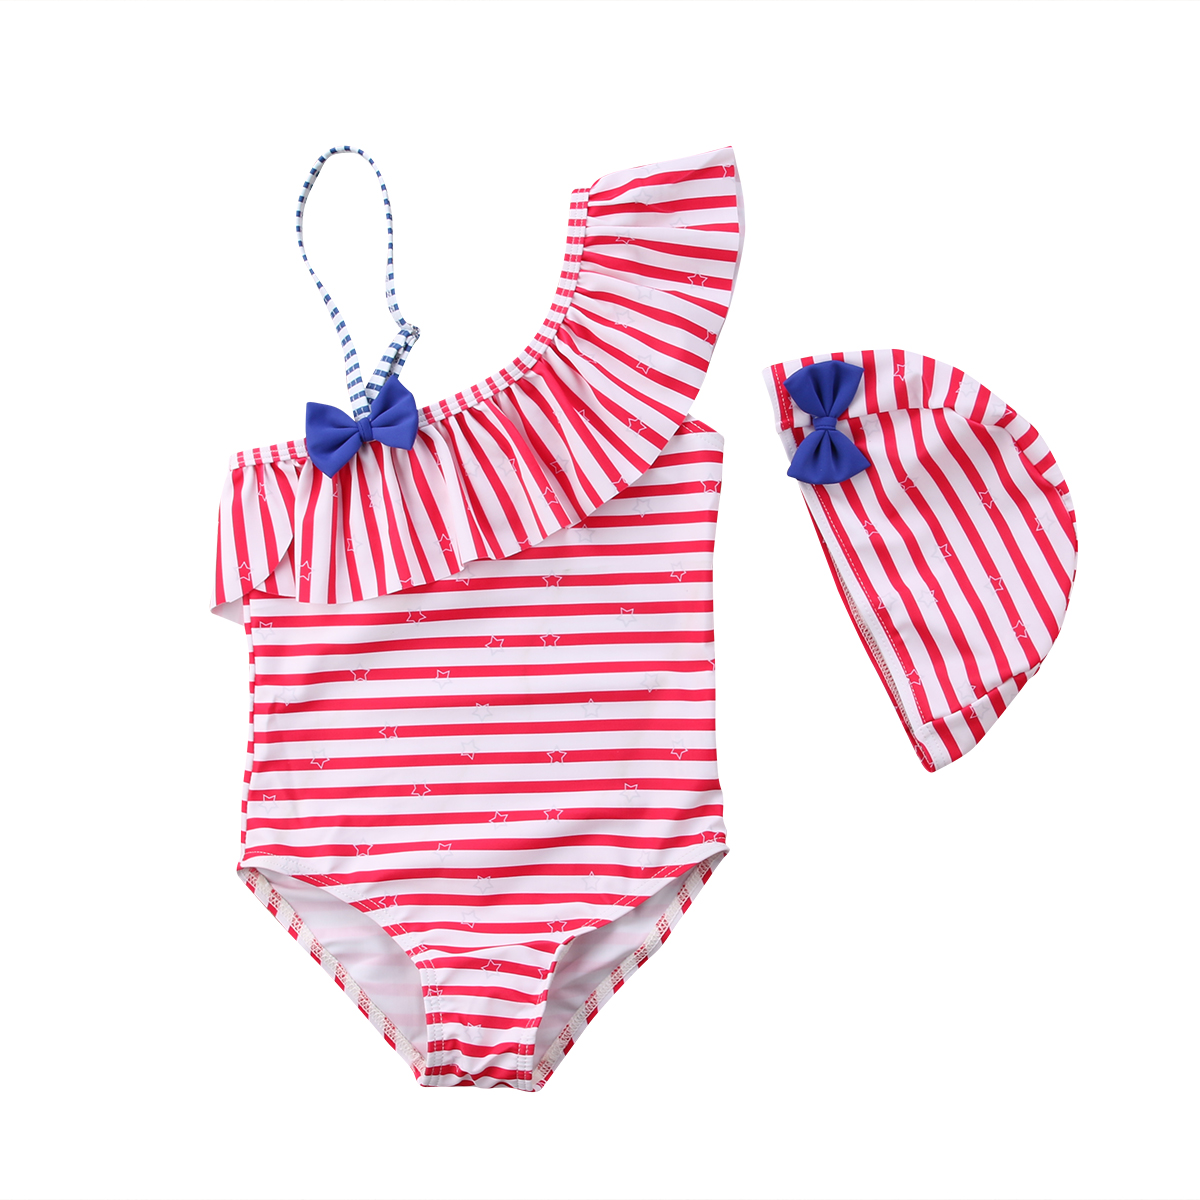 2018 NEW Girls Baby Red/Blue Striped Off Shoulder Bikini Swimsuit Swimming +Hat Tankini Bathing Suit Bathers Set 3-7T